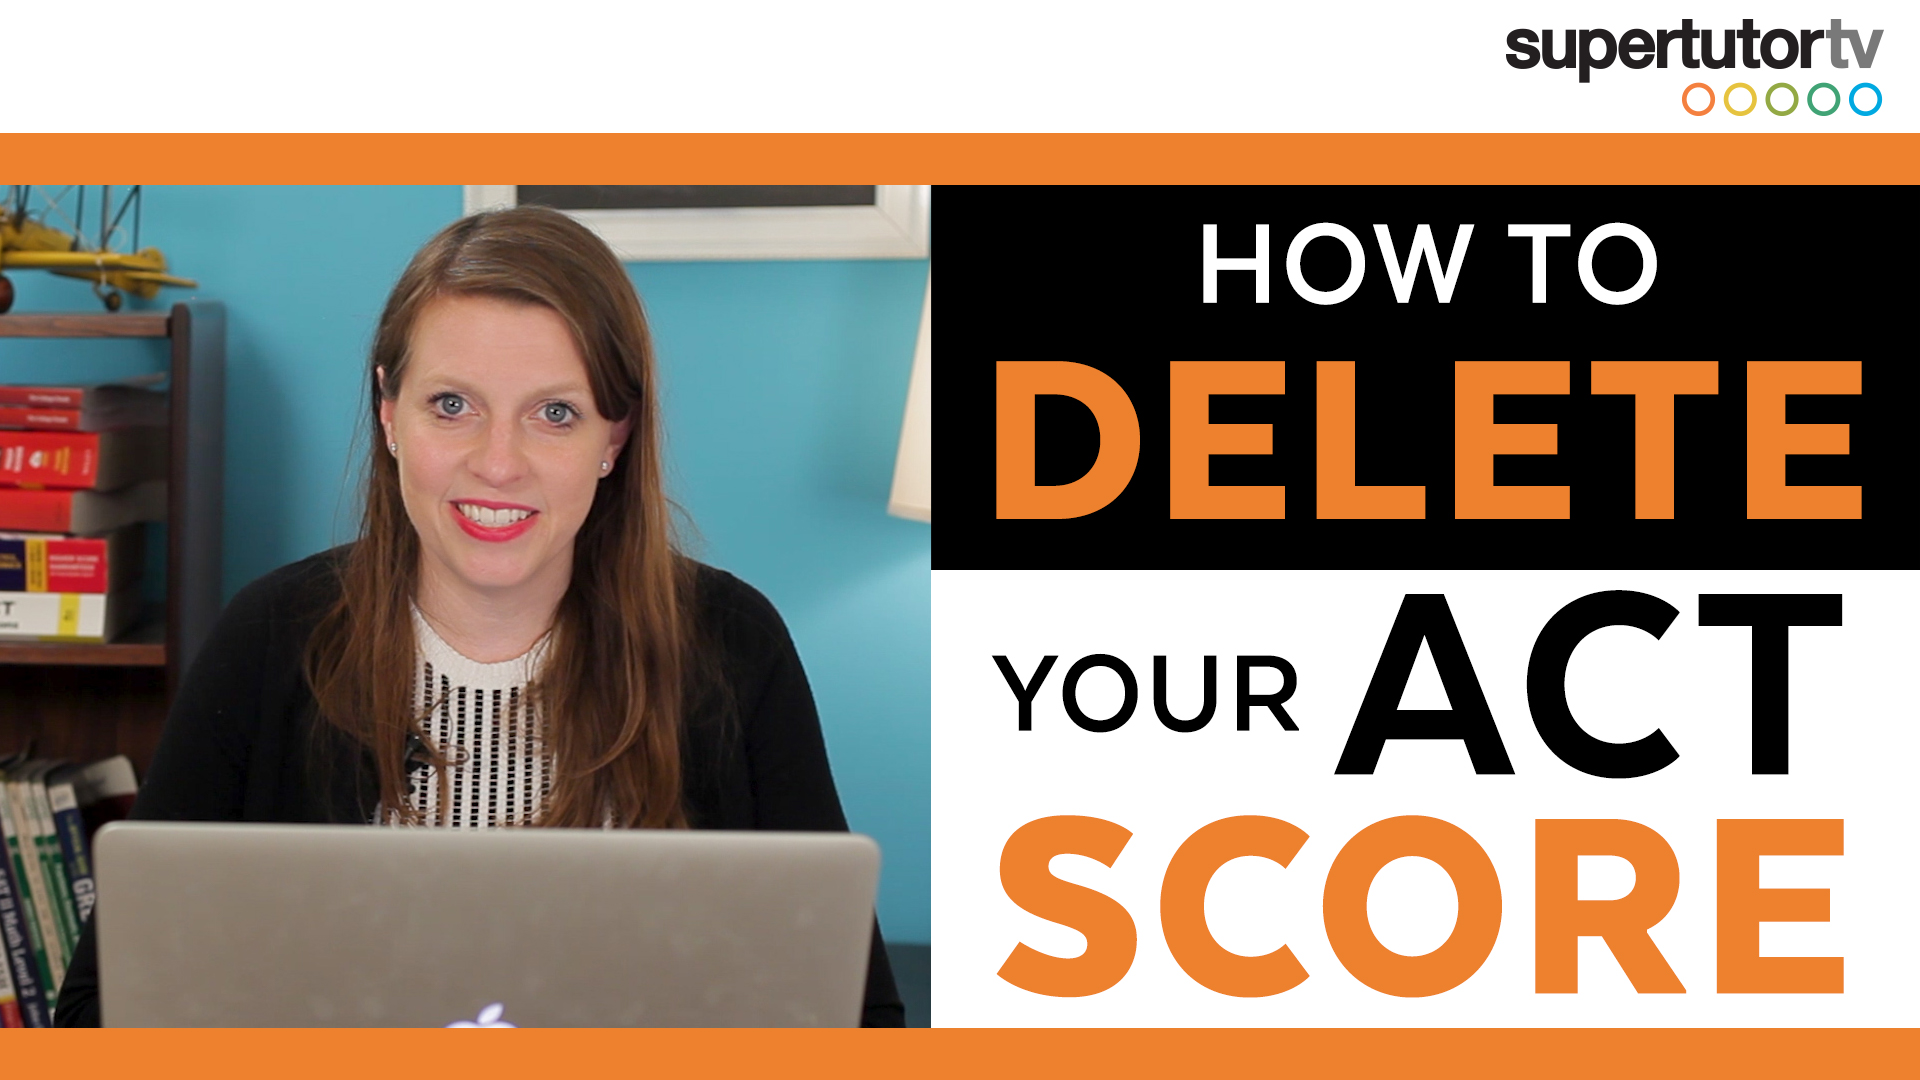 How to Delete Your ACT Score